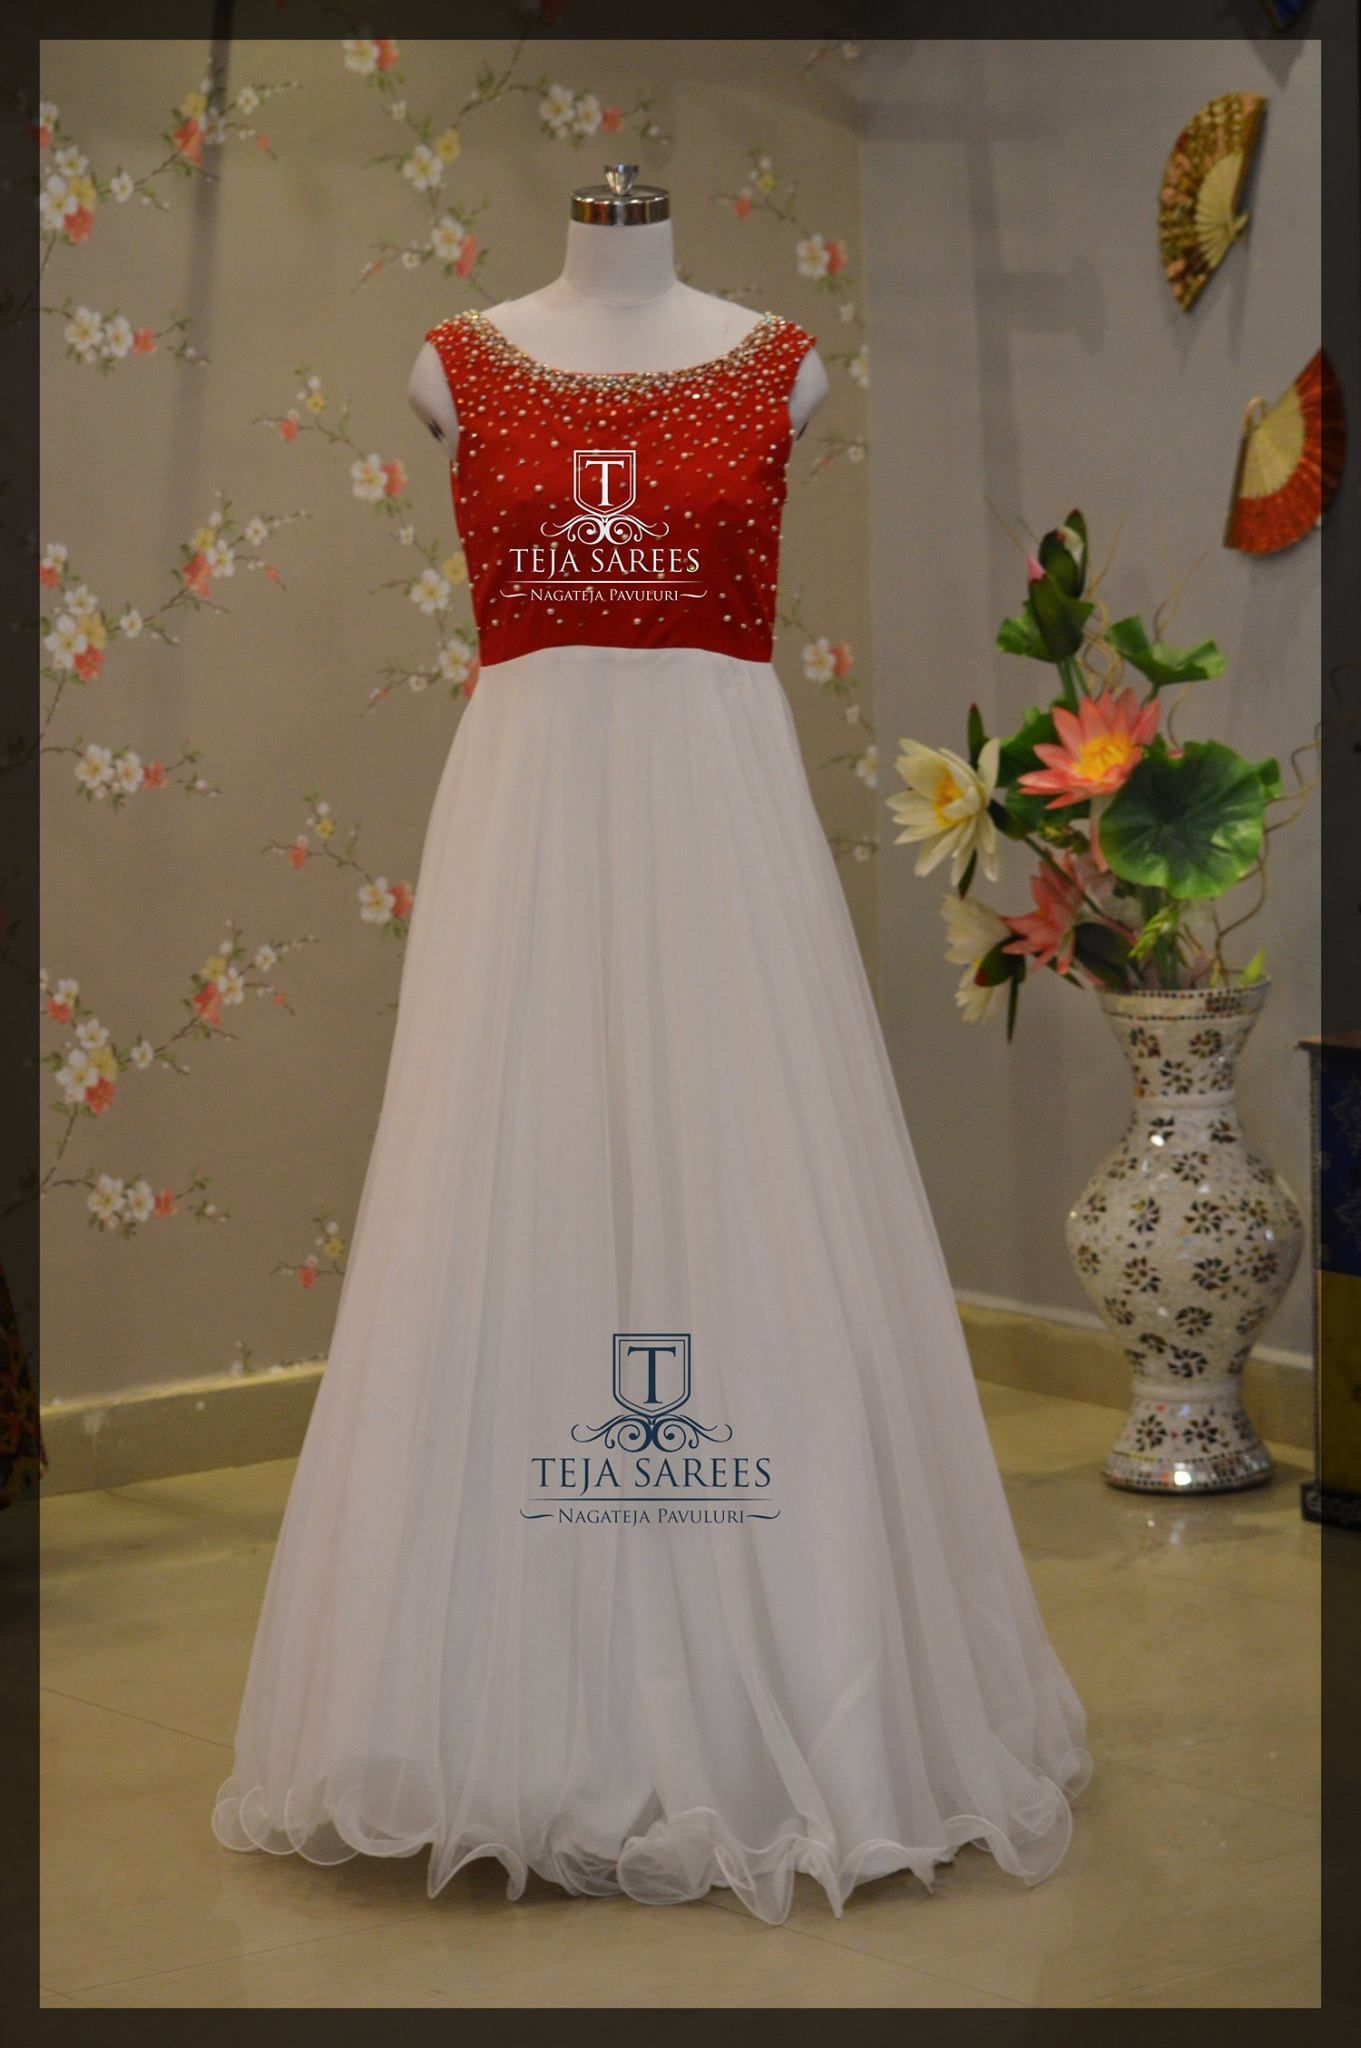 Beautiful White And Red Combination Floor Length Dress From Teja Ts Ds 479availablefor Orders Queriescall Whats On8341382382 Ormail